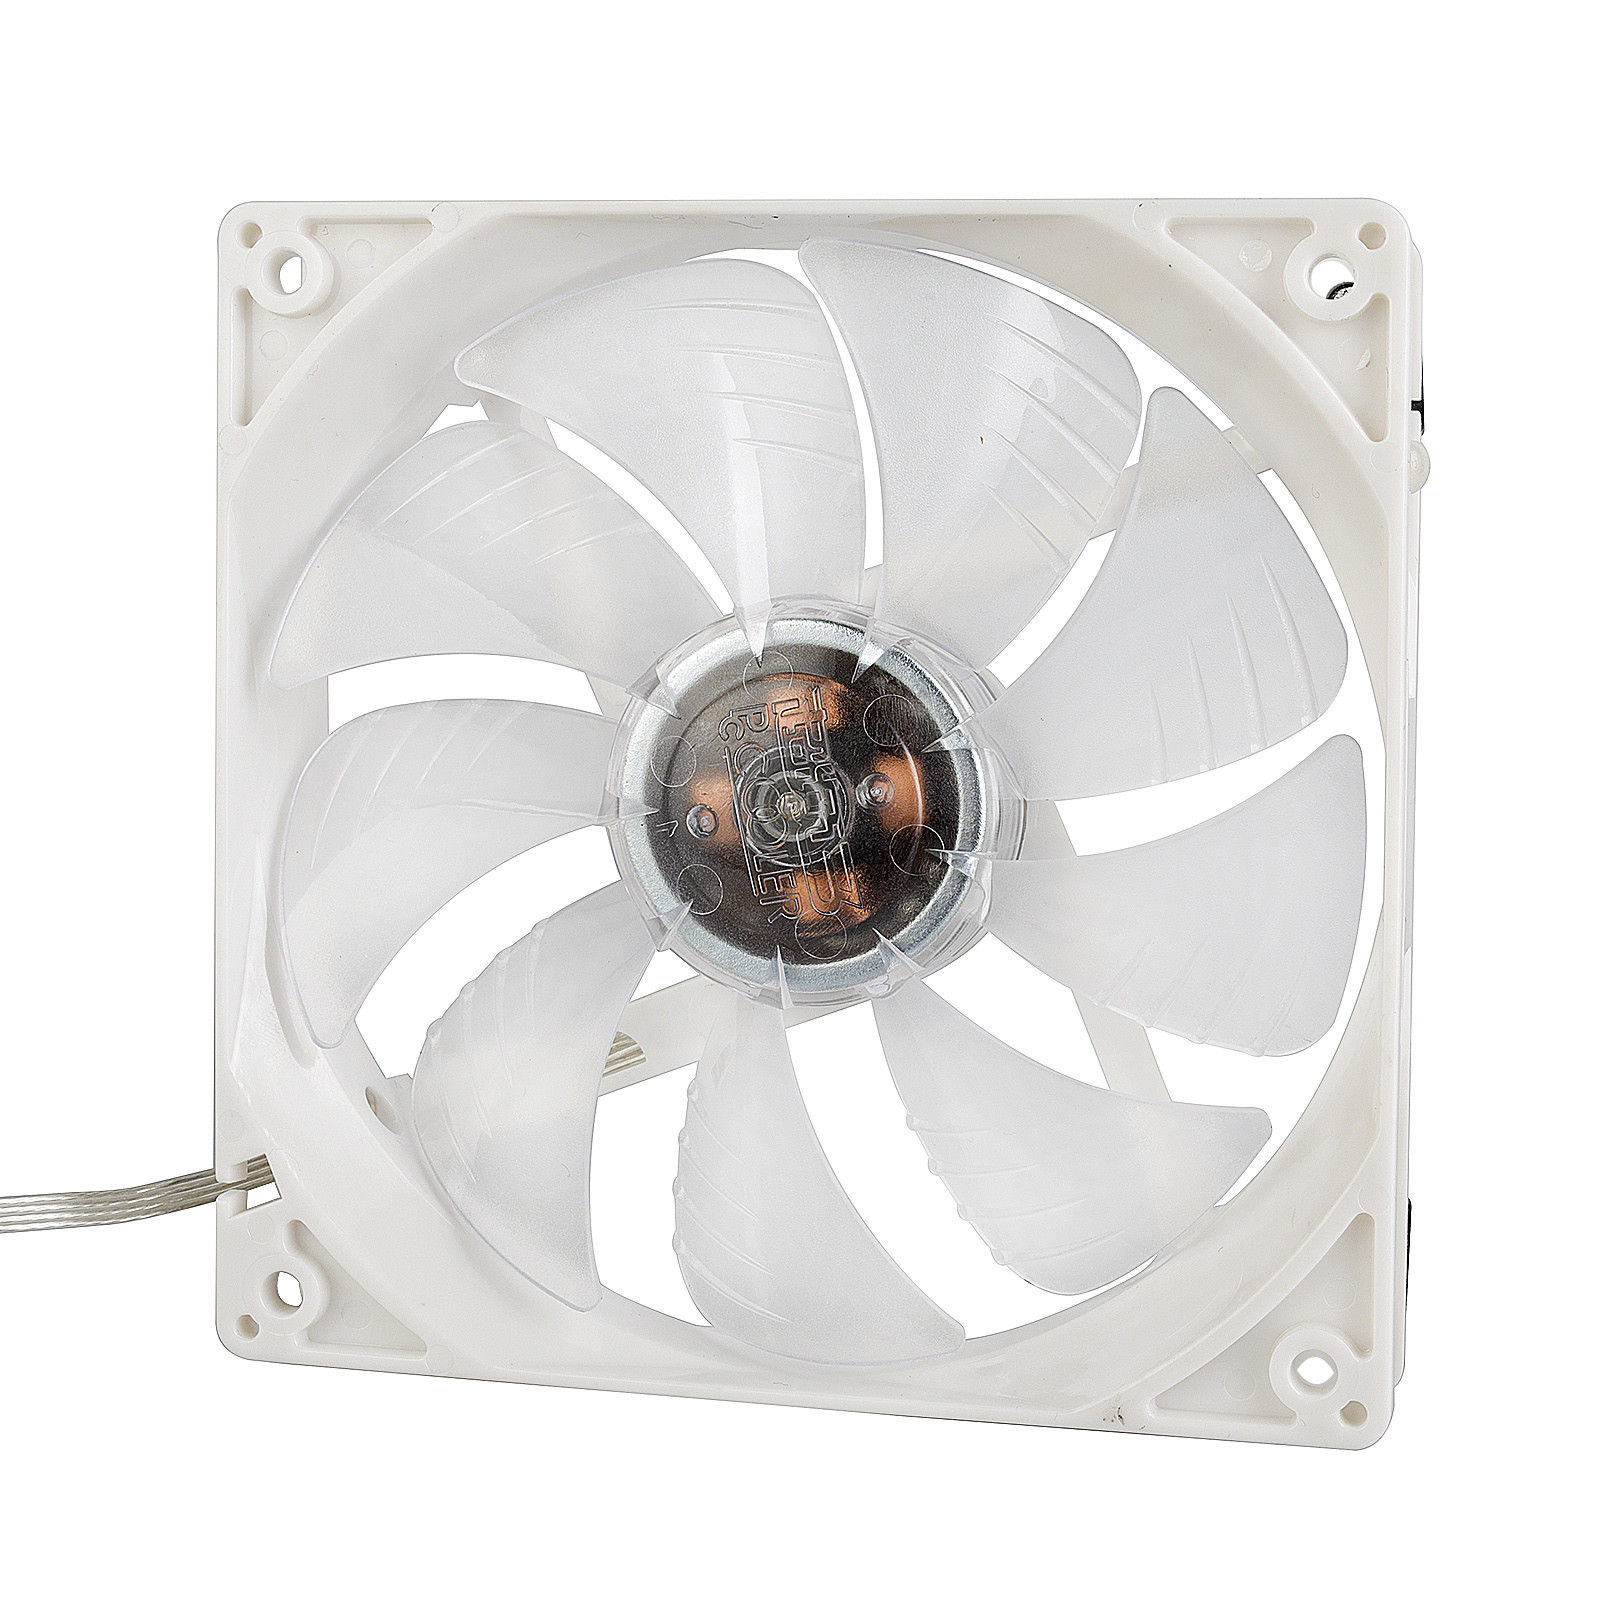 12cm Blue LED PC Computer Case Cooling Fan 1300rpm 9 Blade 12V 3pin 4pin Power